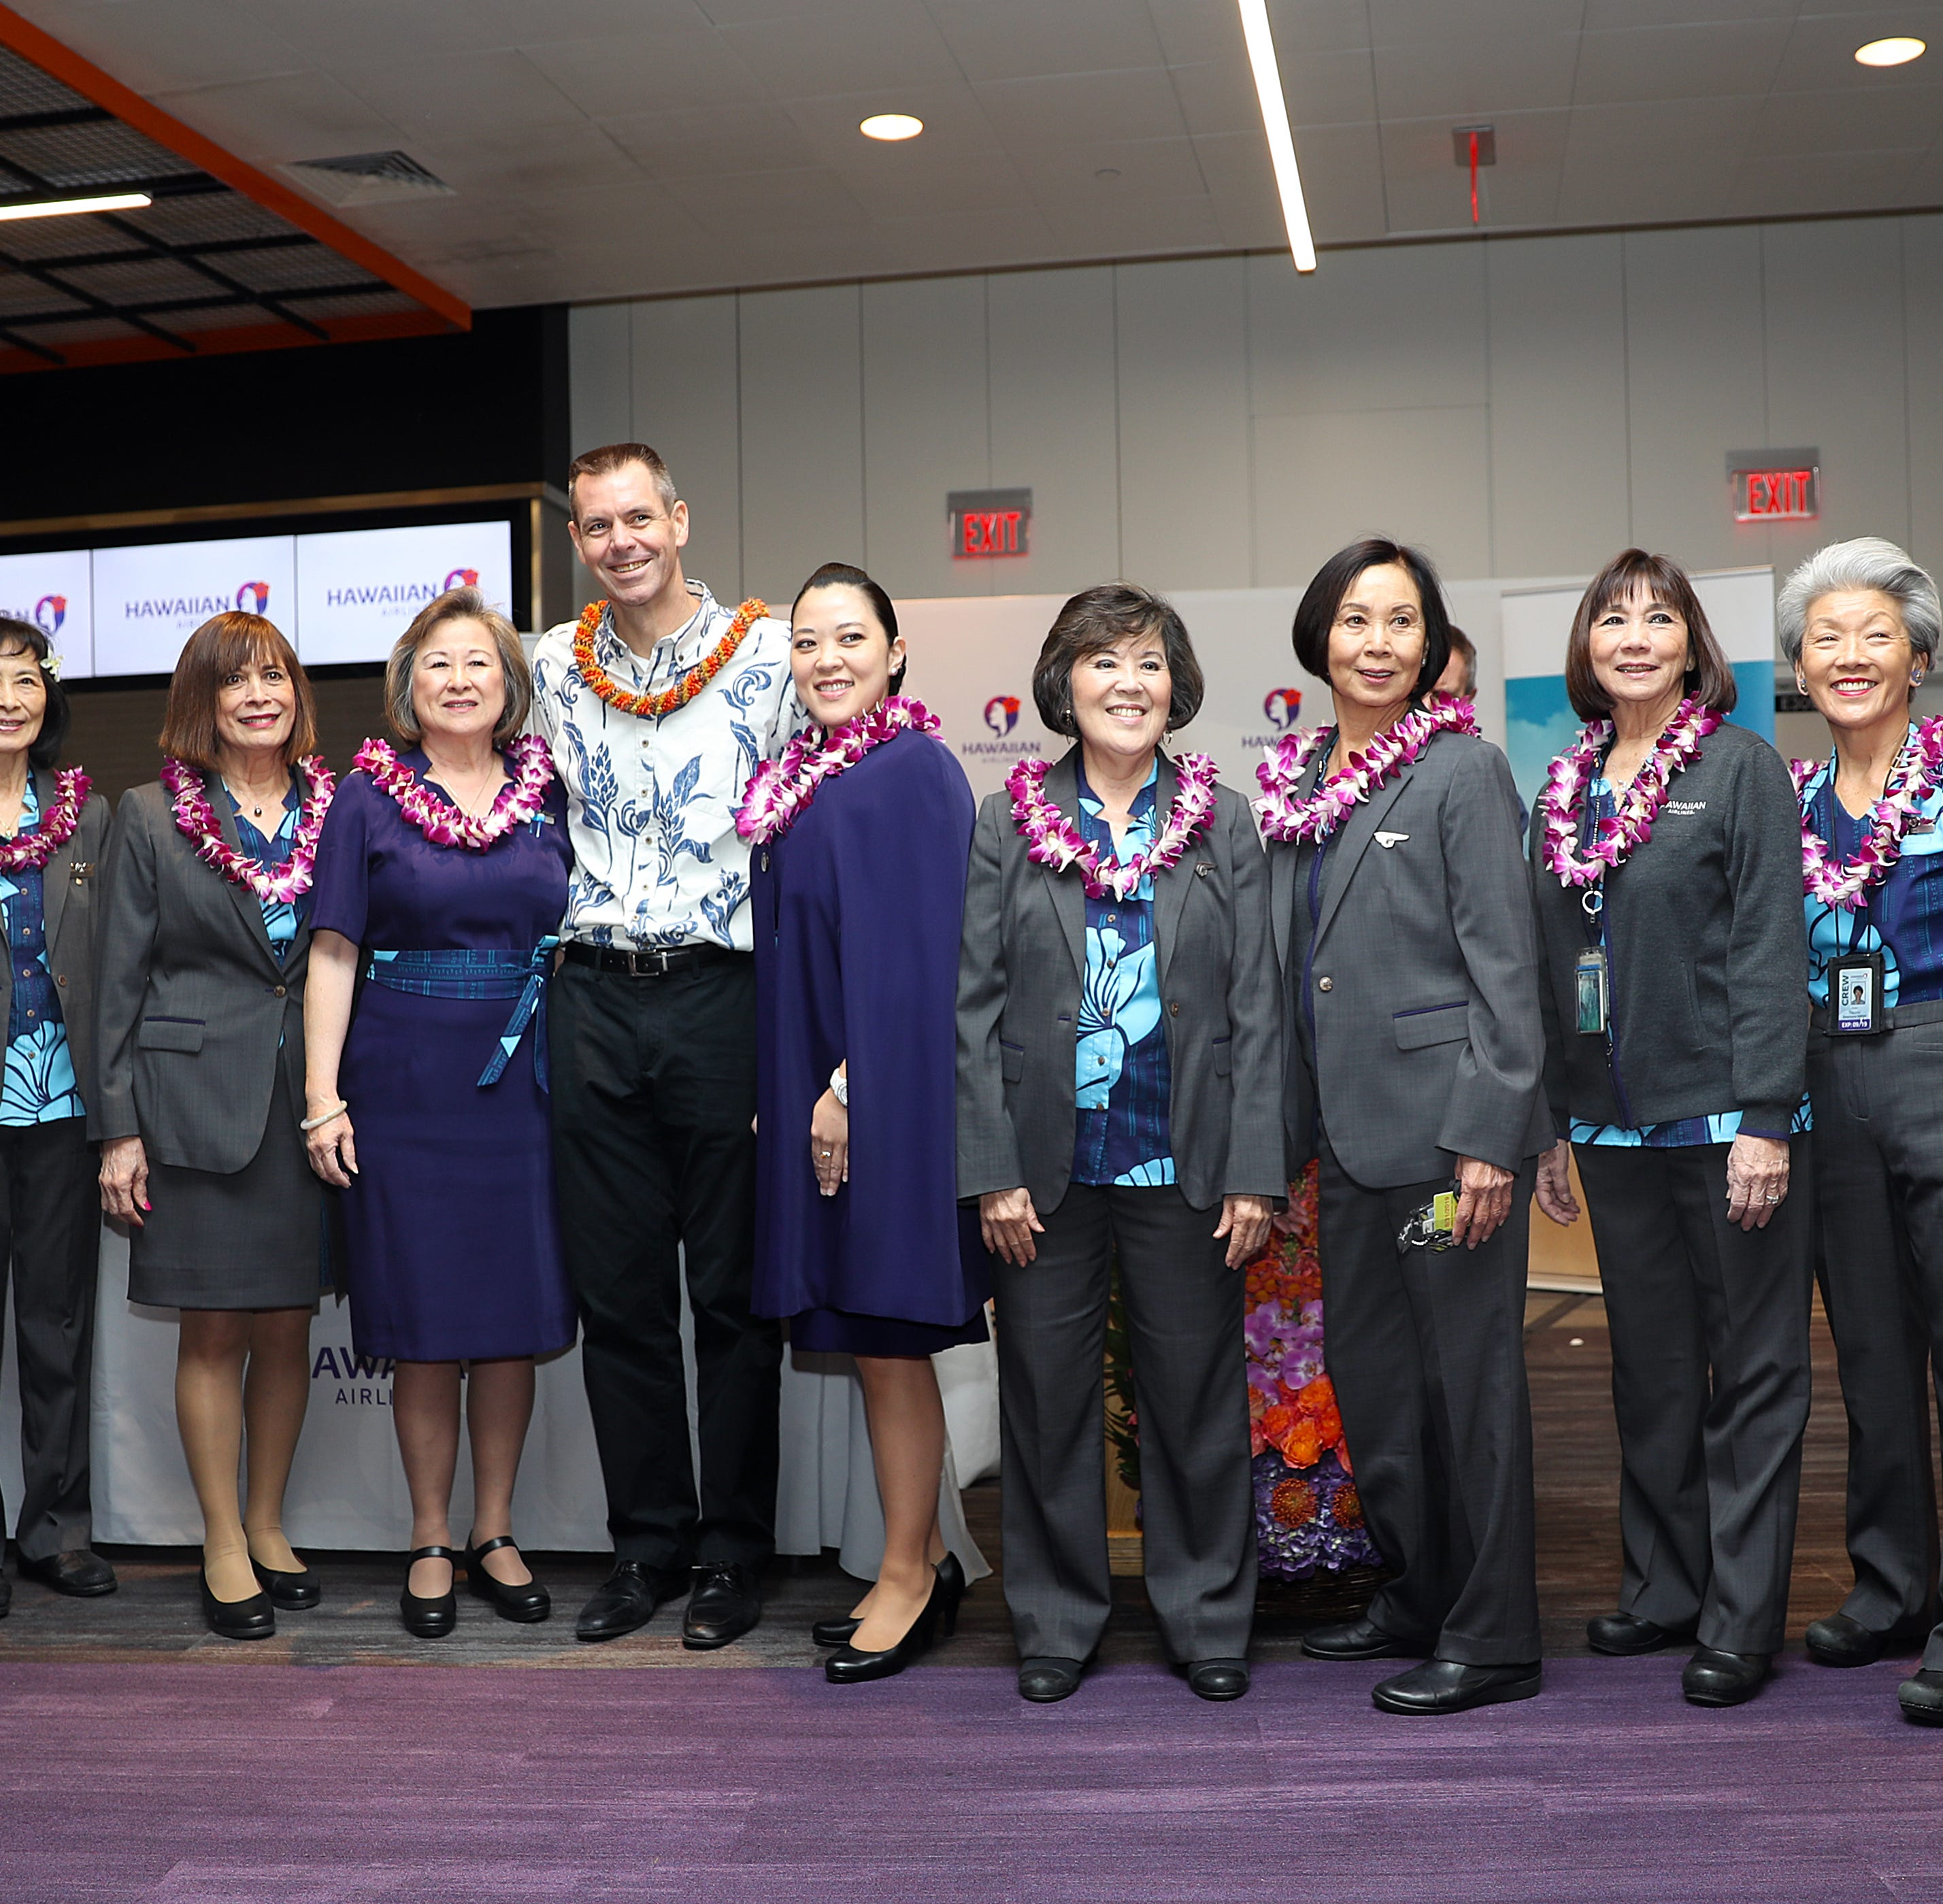 Client:  Hawaiian Airlines